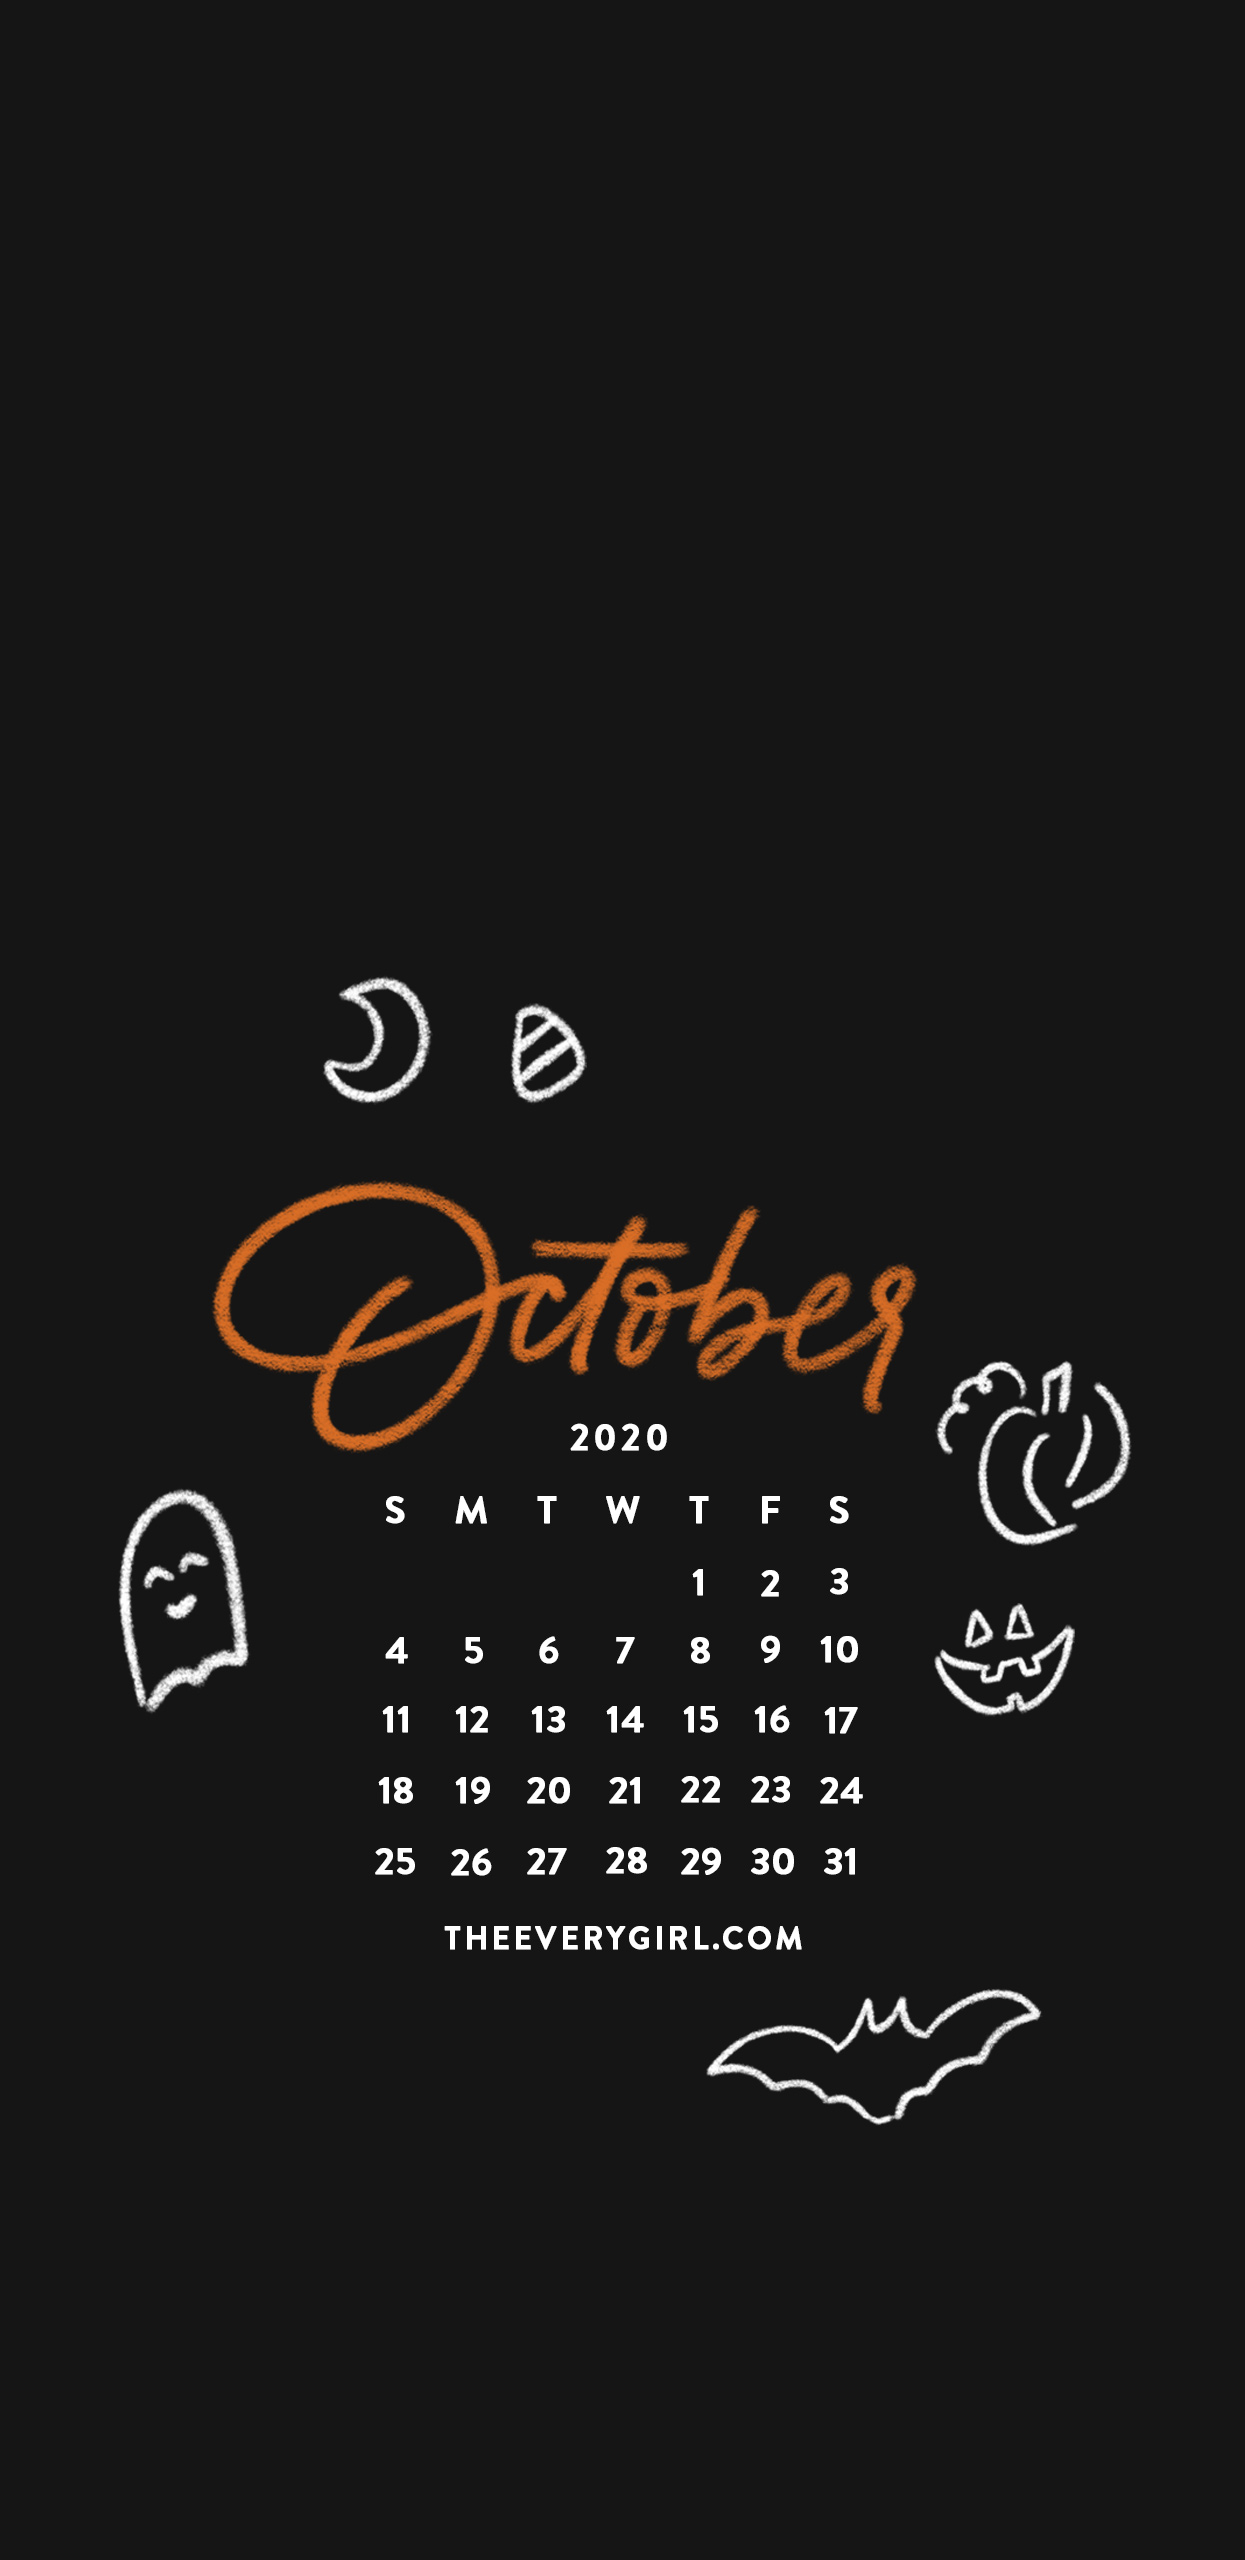 Free Downloadable Tech Backgrounds For October 2020 The Everygirl